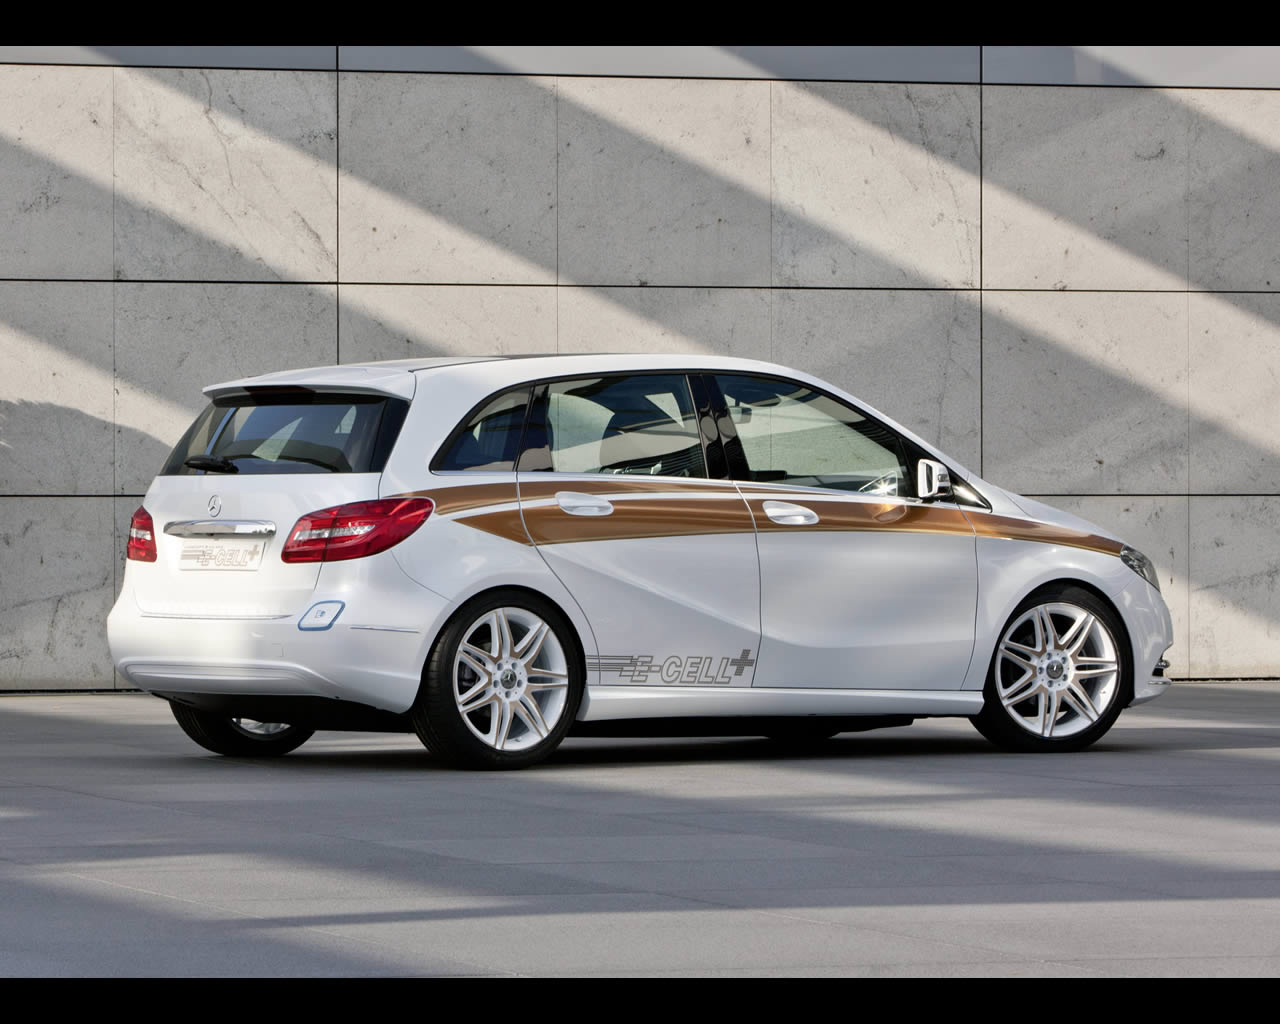 mercedes b class e cell plus range extended plug in electric vehicle 2011. Black Bedroom Furniture Sets. Home Design Ideas